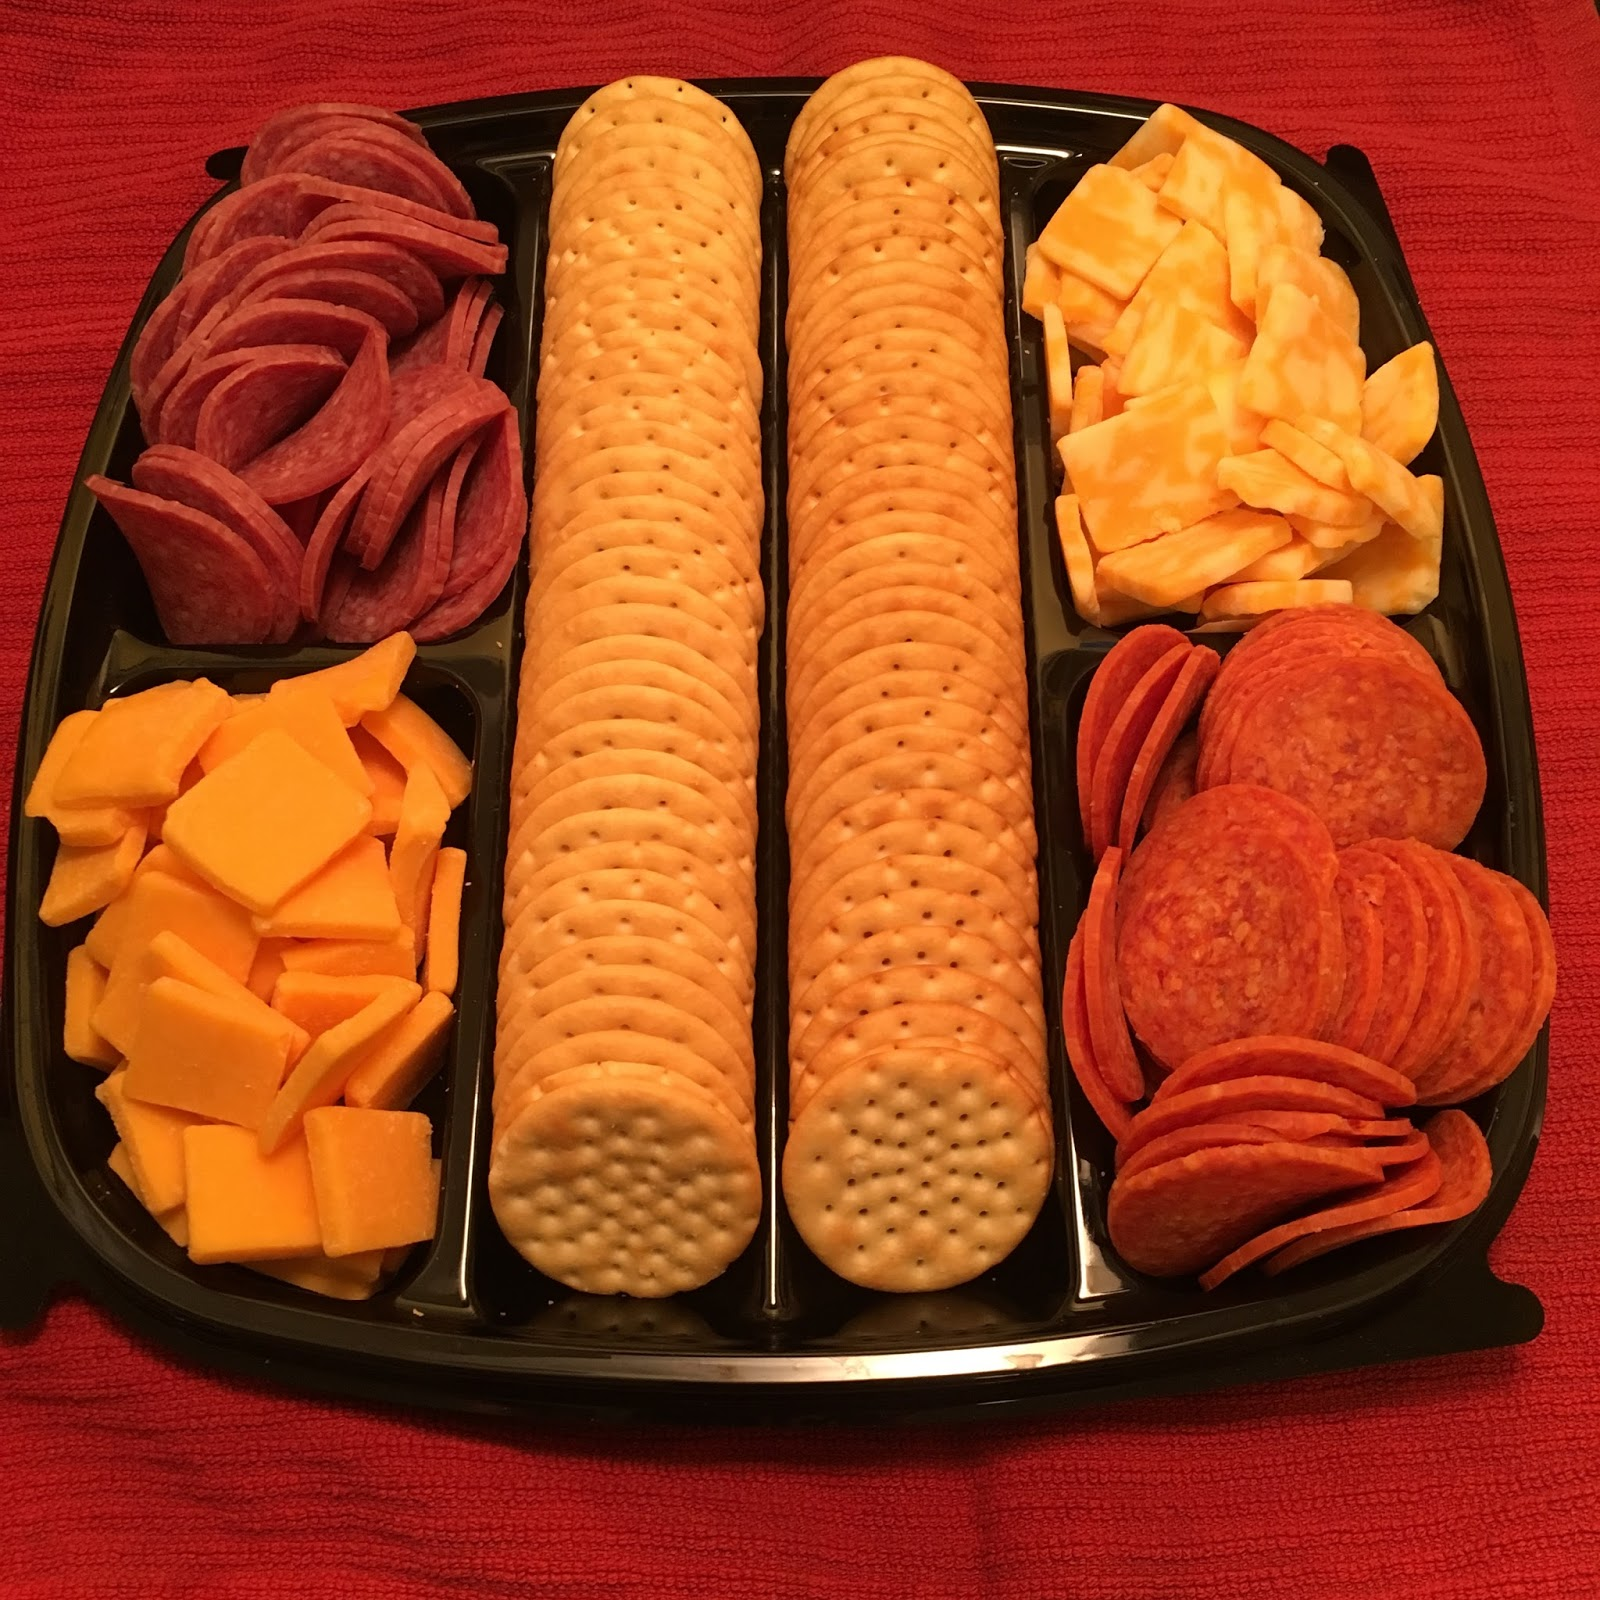 Twingle mommmy hormel gatherings party tray delicious snacking trays have built in containers for the cheese crackers and meat no need to use your own tray and have another dish to wash this one works perfectly solutioingenieria Images